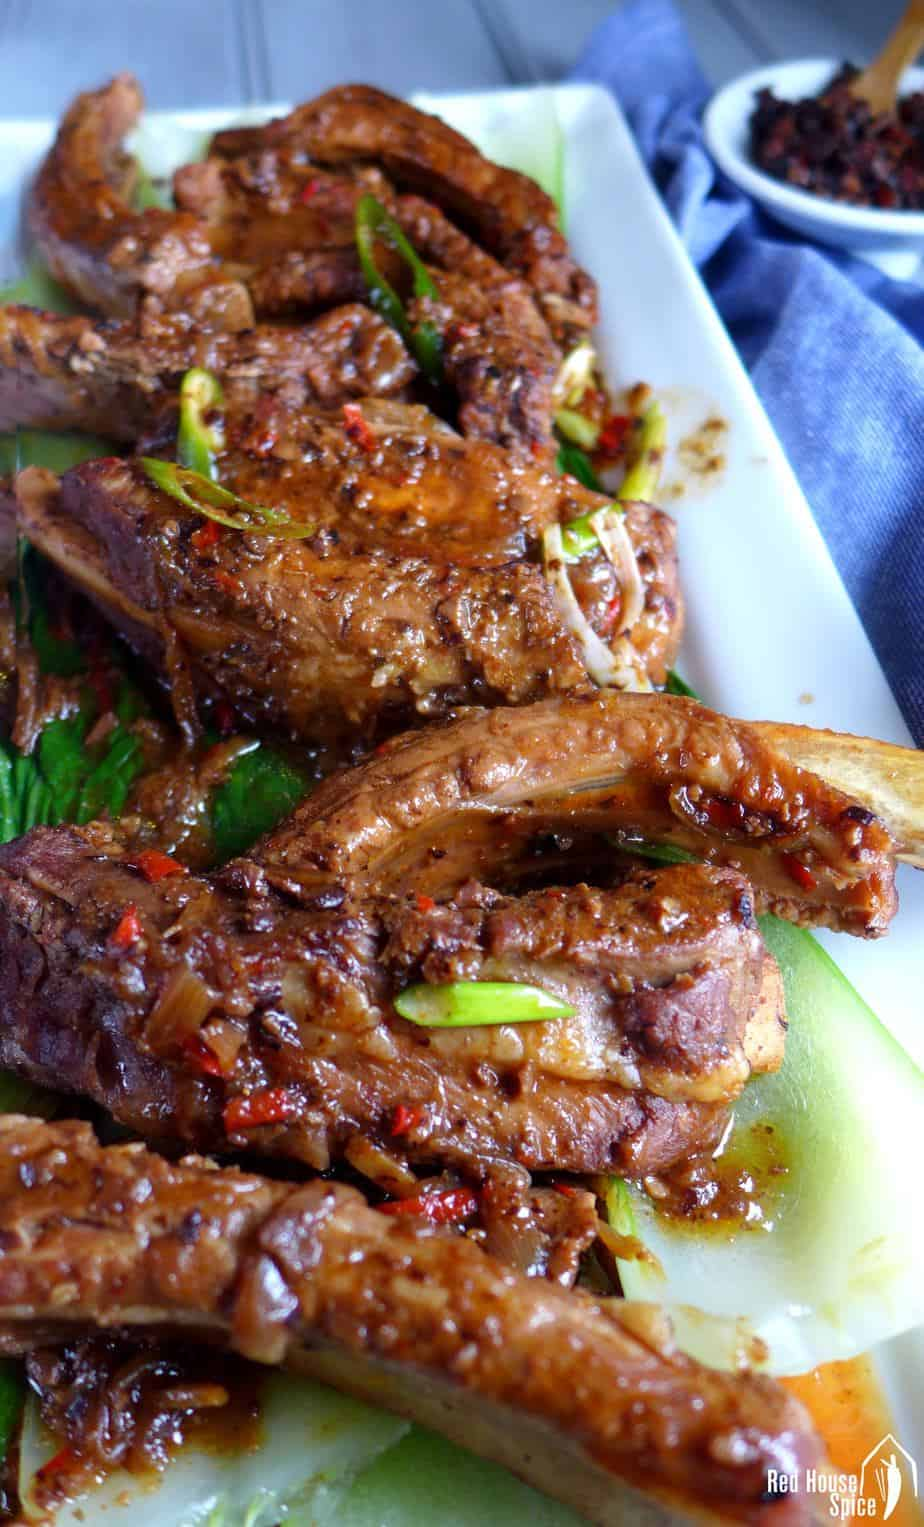 A plate of braised spare ribs with black bean sauce.